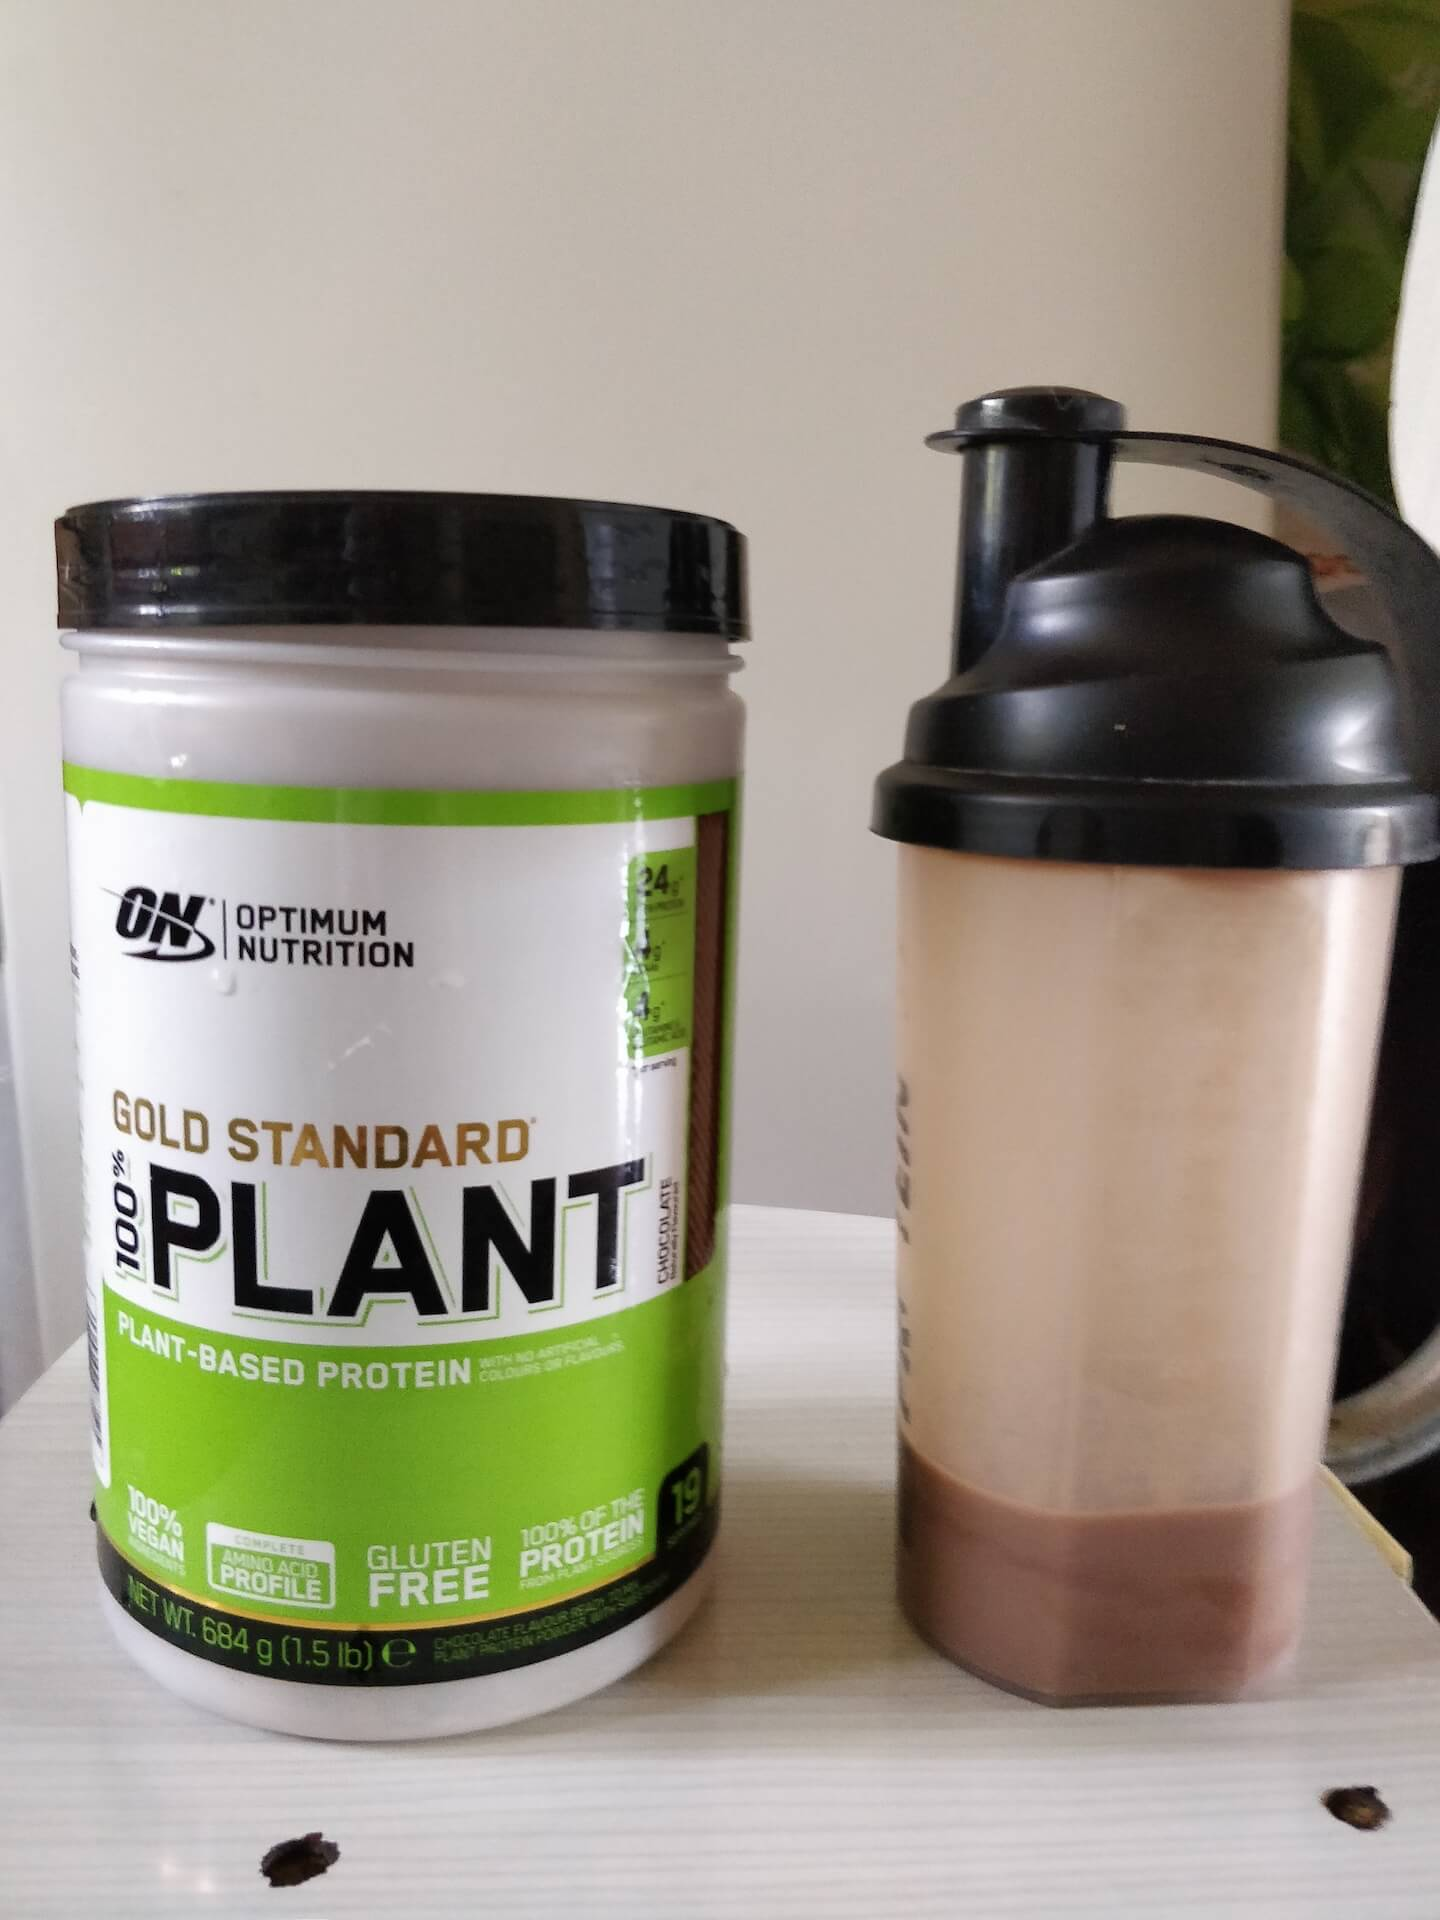 Gold Standard 100% Plant Based Protein Powder (1.5 pound Chocolate) Tastiness, Mixability, and Price